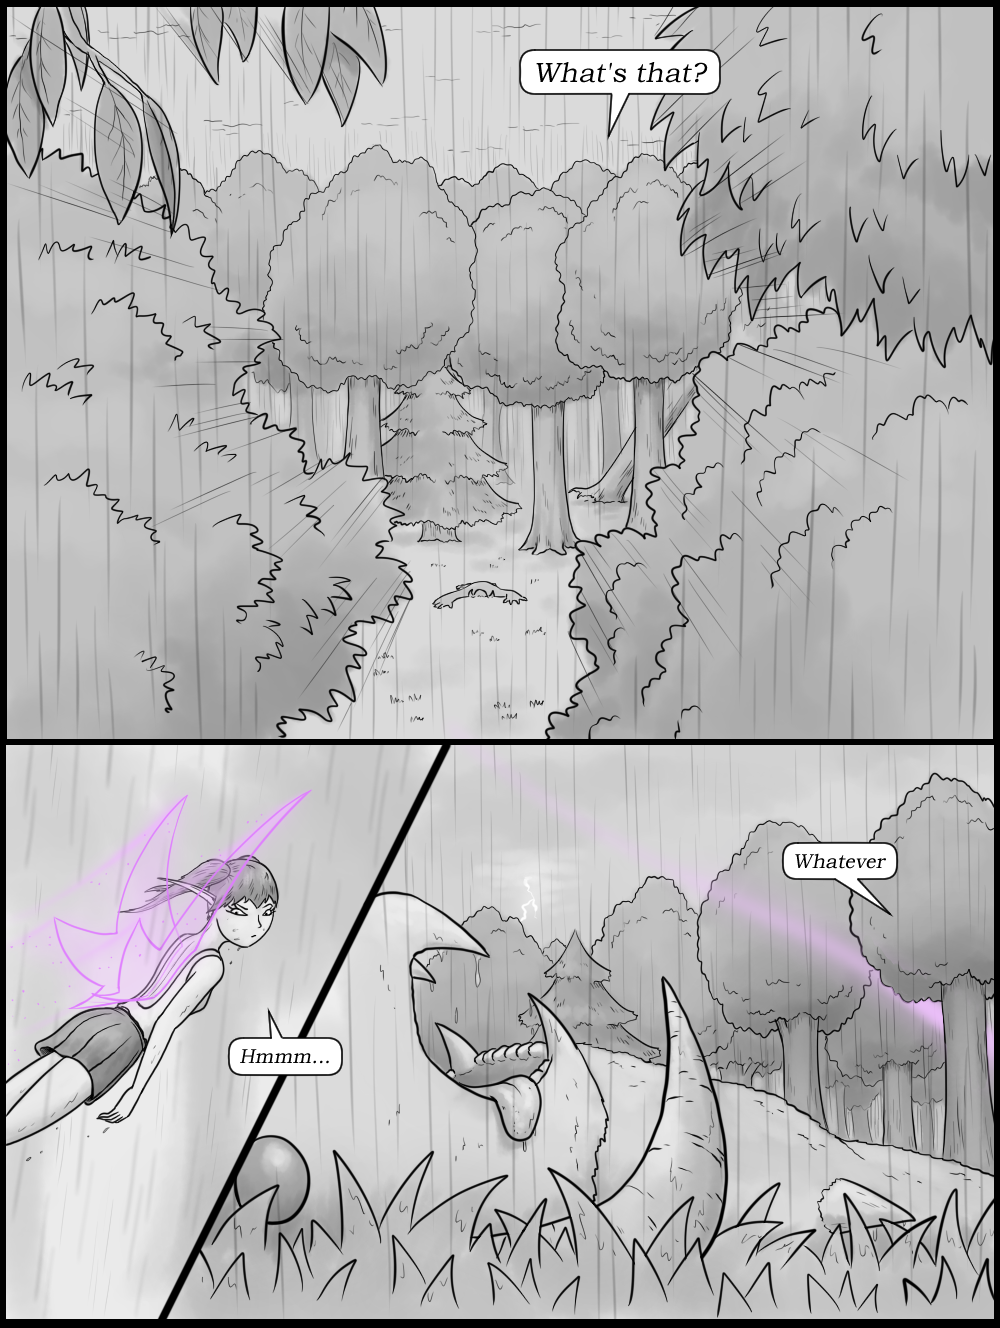 Page 34 - Finding the way (Part 3)